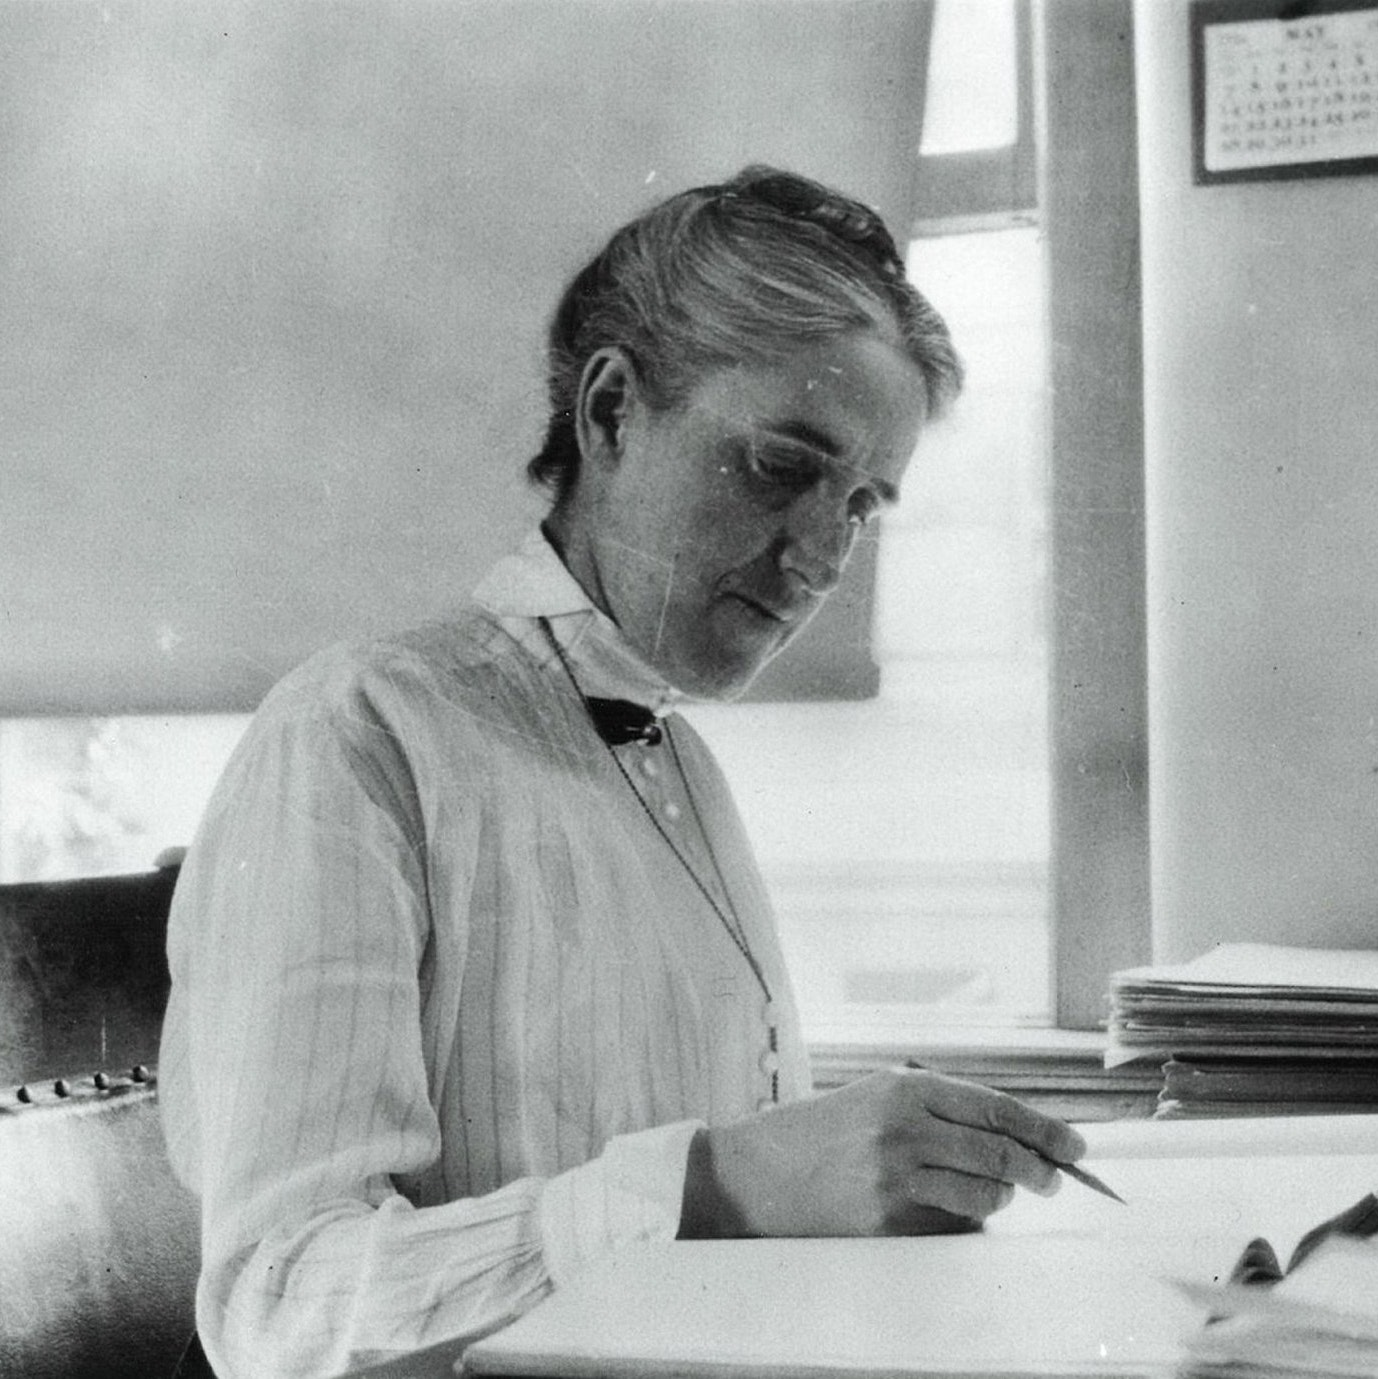 Woman sitting at a desk, pencil in hand with a book open faced.